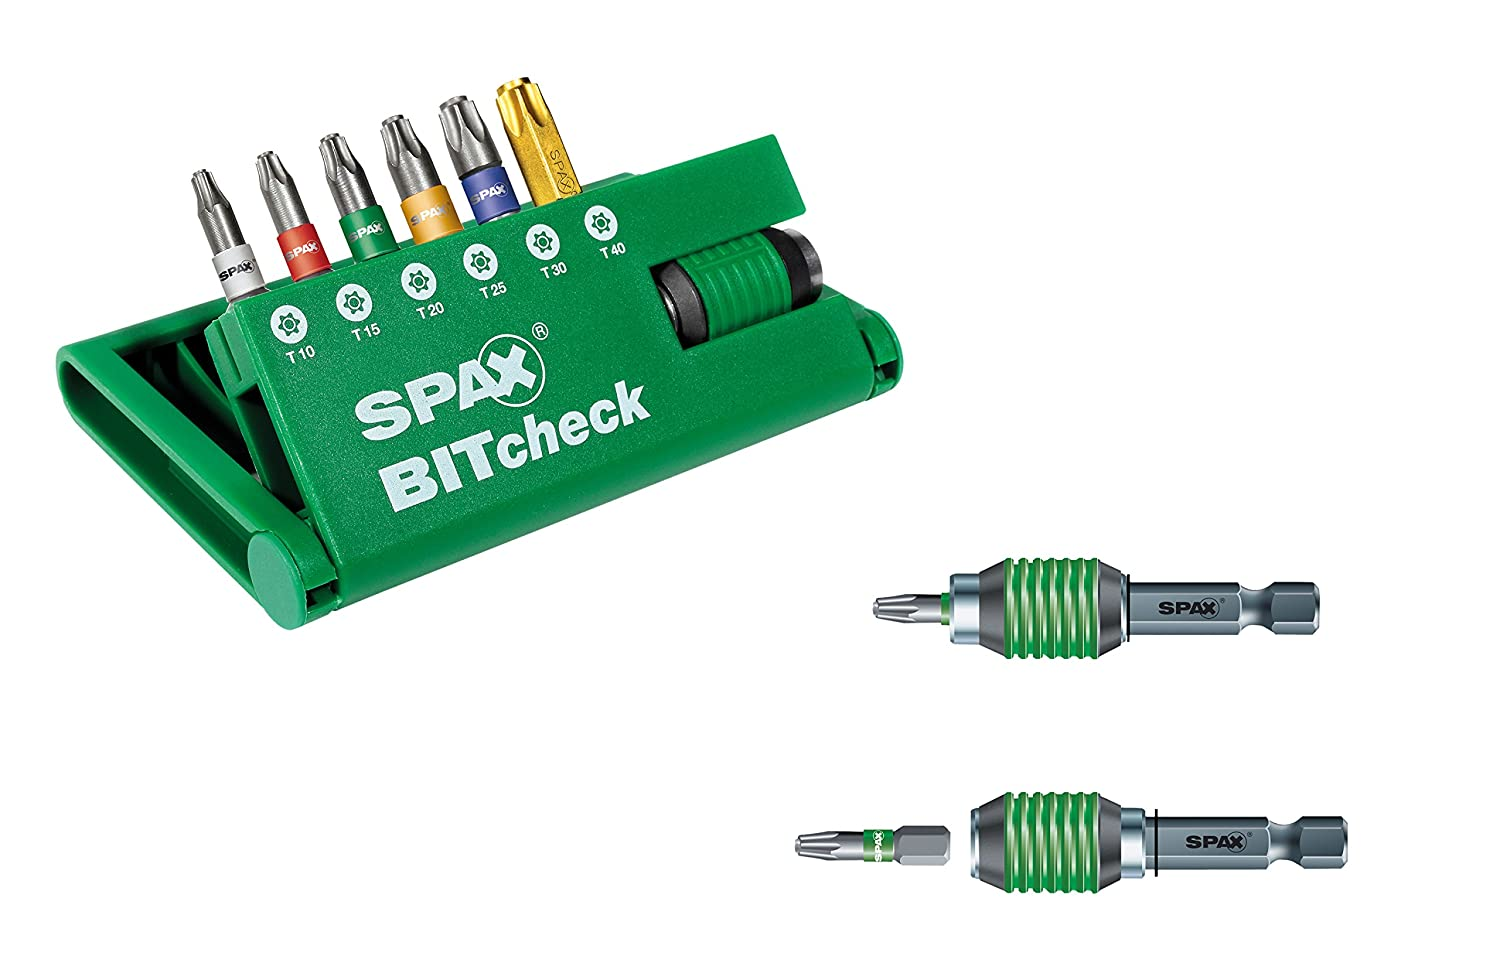 Spax Bitcheck T-Star plus 6  Bits (T10, T15, T20, T25, T30) Rapidaptor Bit Holder  –   5000009181309 T30) Rapidaptor Bit Holder - 5000009181309